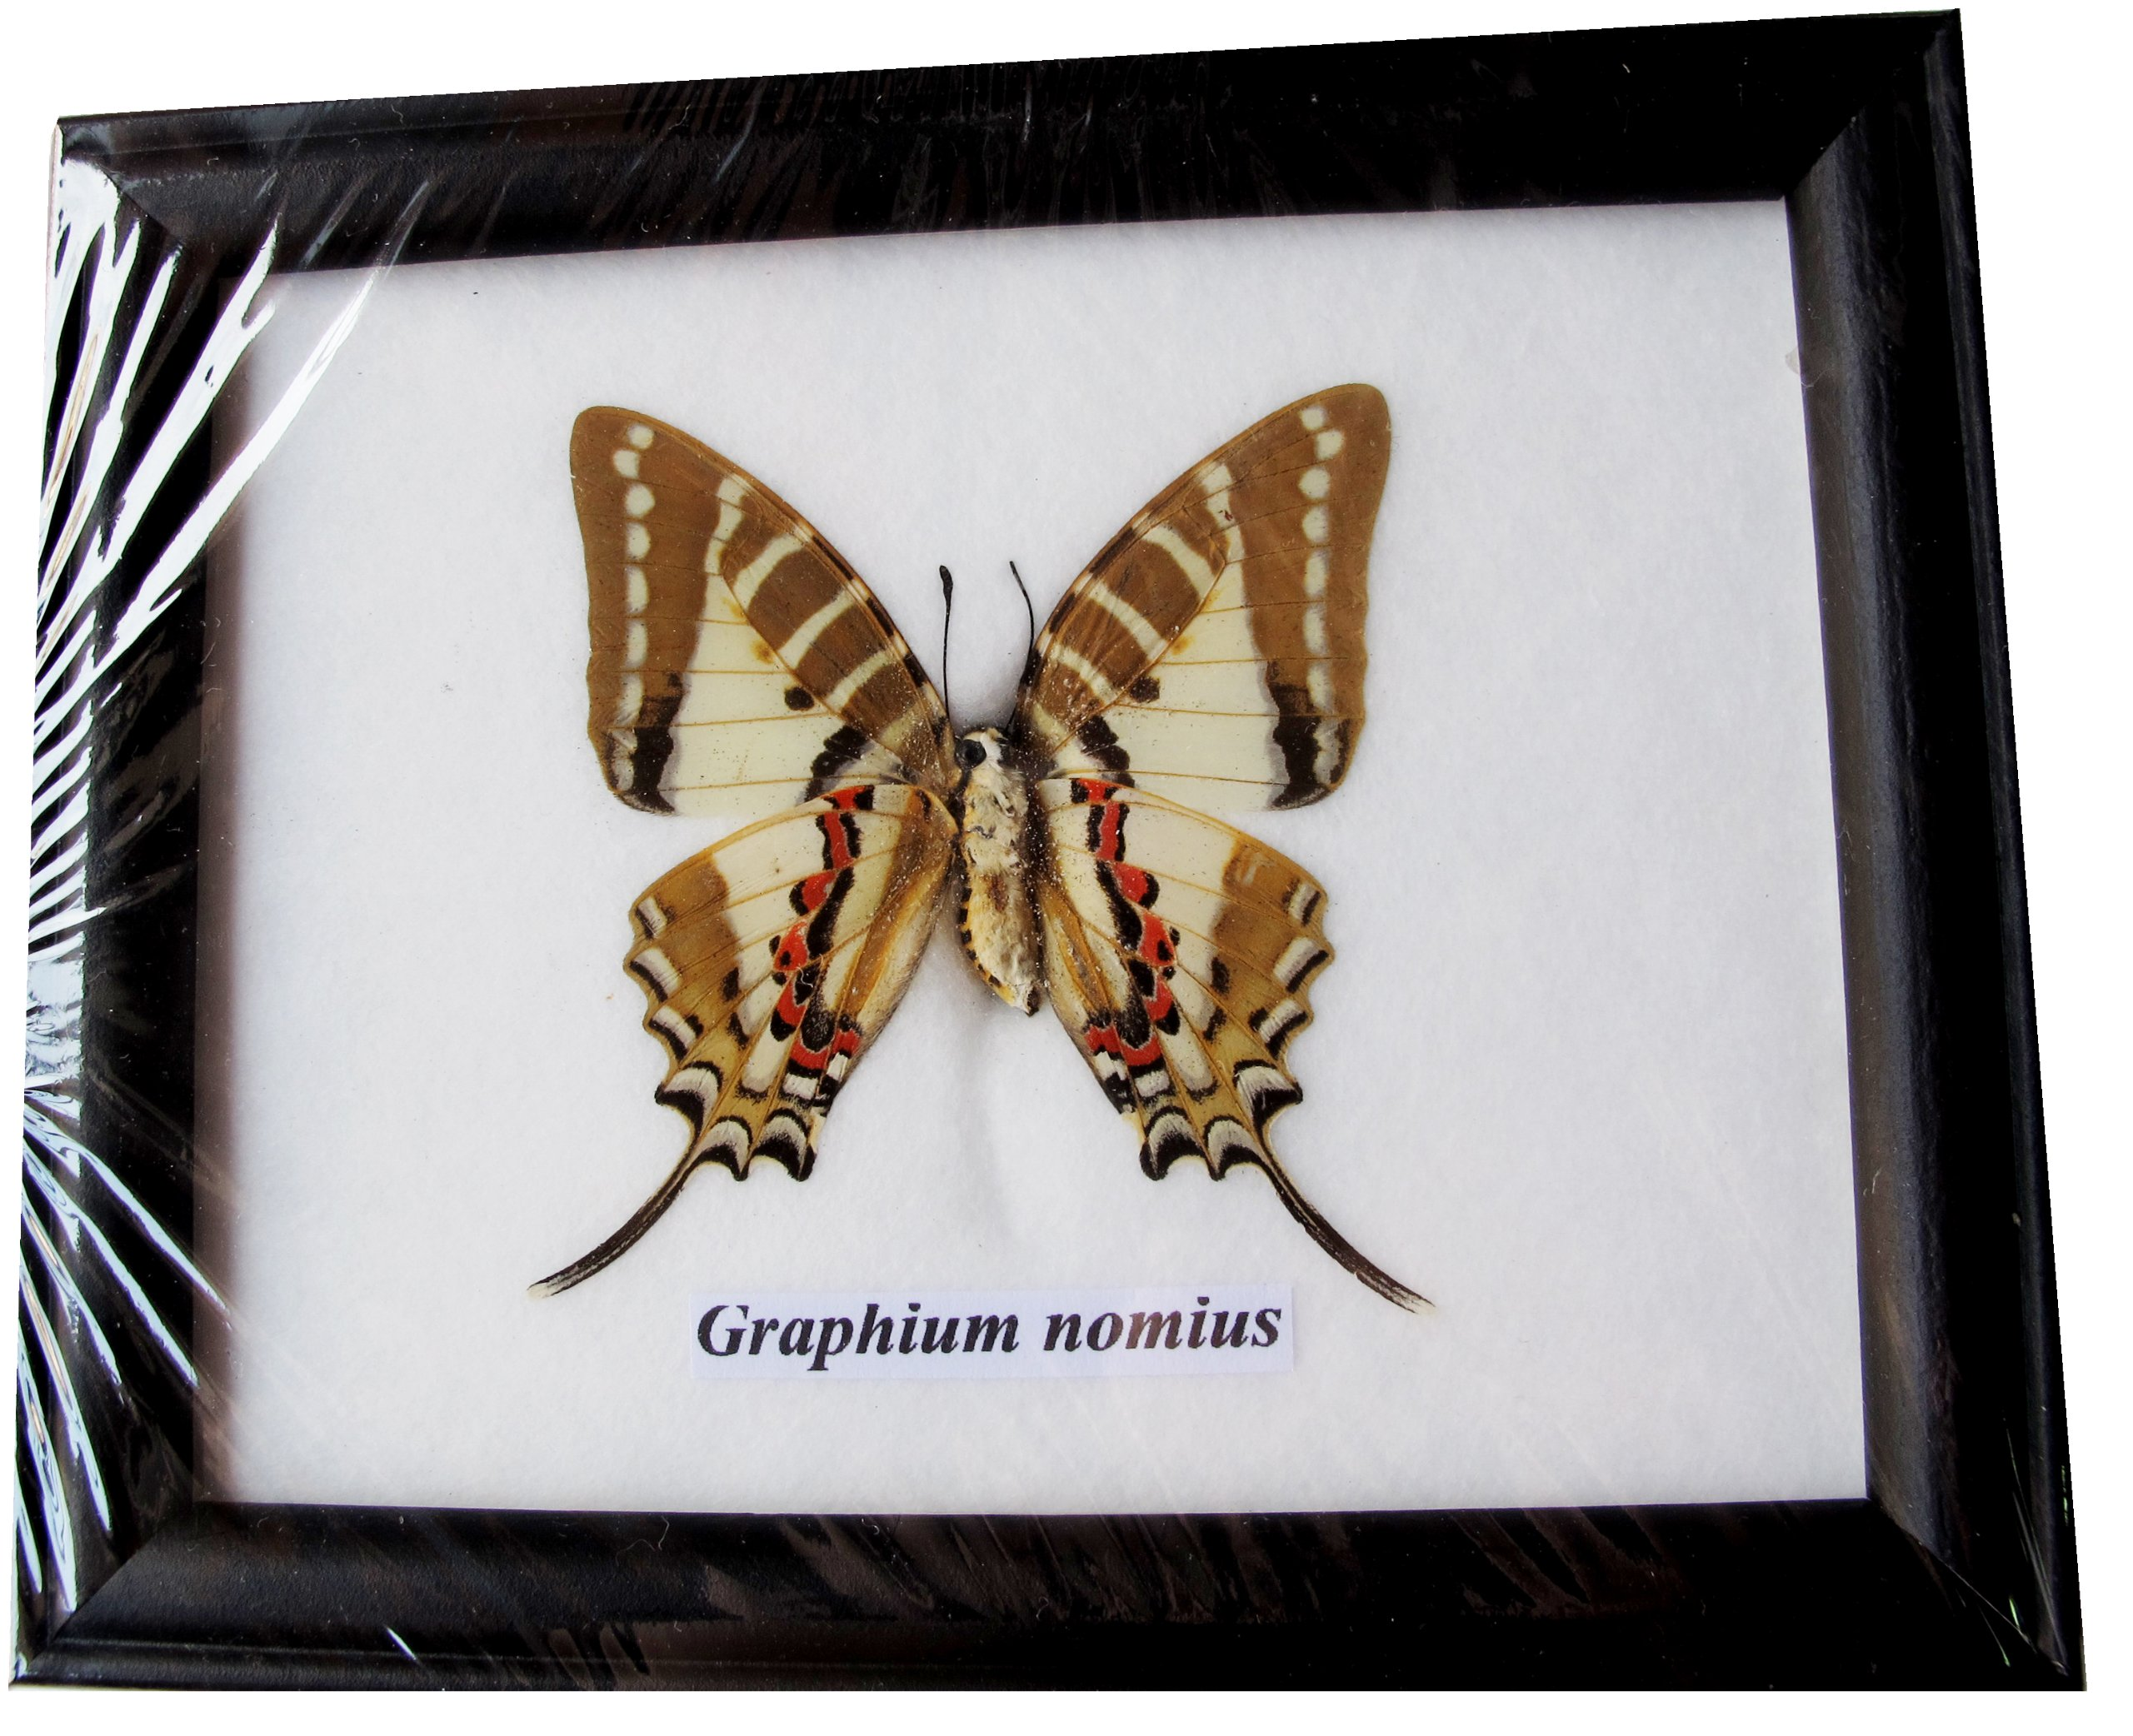 FRAMED REAL BEAUTIFUL GRAPHIUM NONIUS (FONT) BUTTERFLY DISPLAY INSECT TAXIDERMY 5''X5''X1''